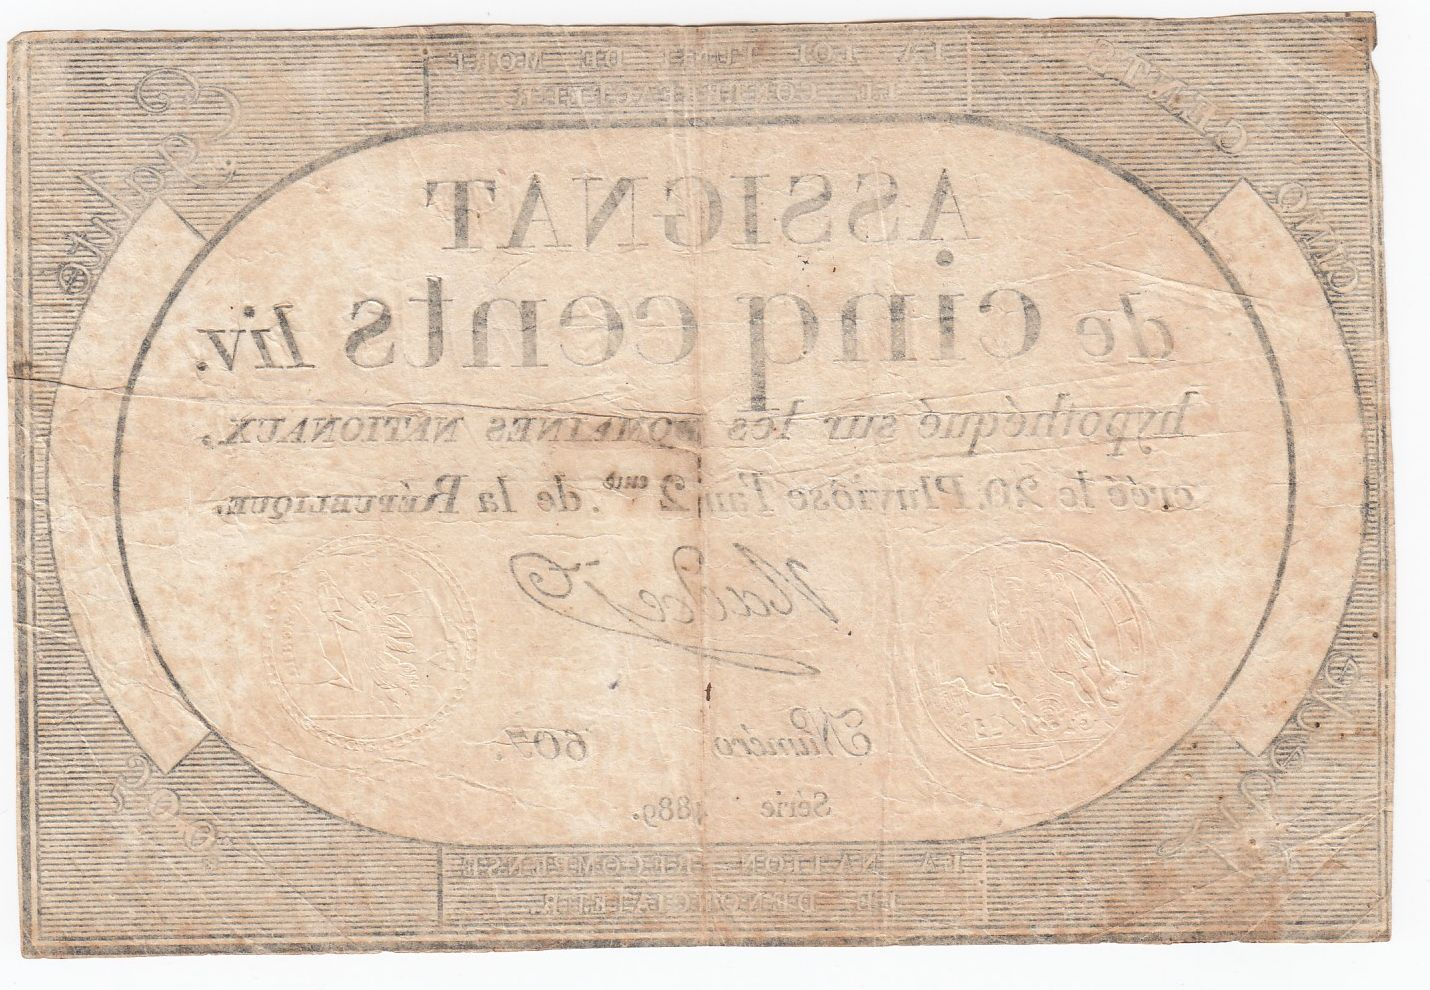 France 500 Livres 20 Pluviose An II (8.2.1794) - Sign. Nadal